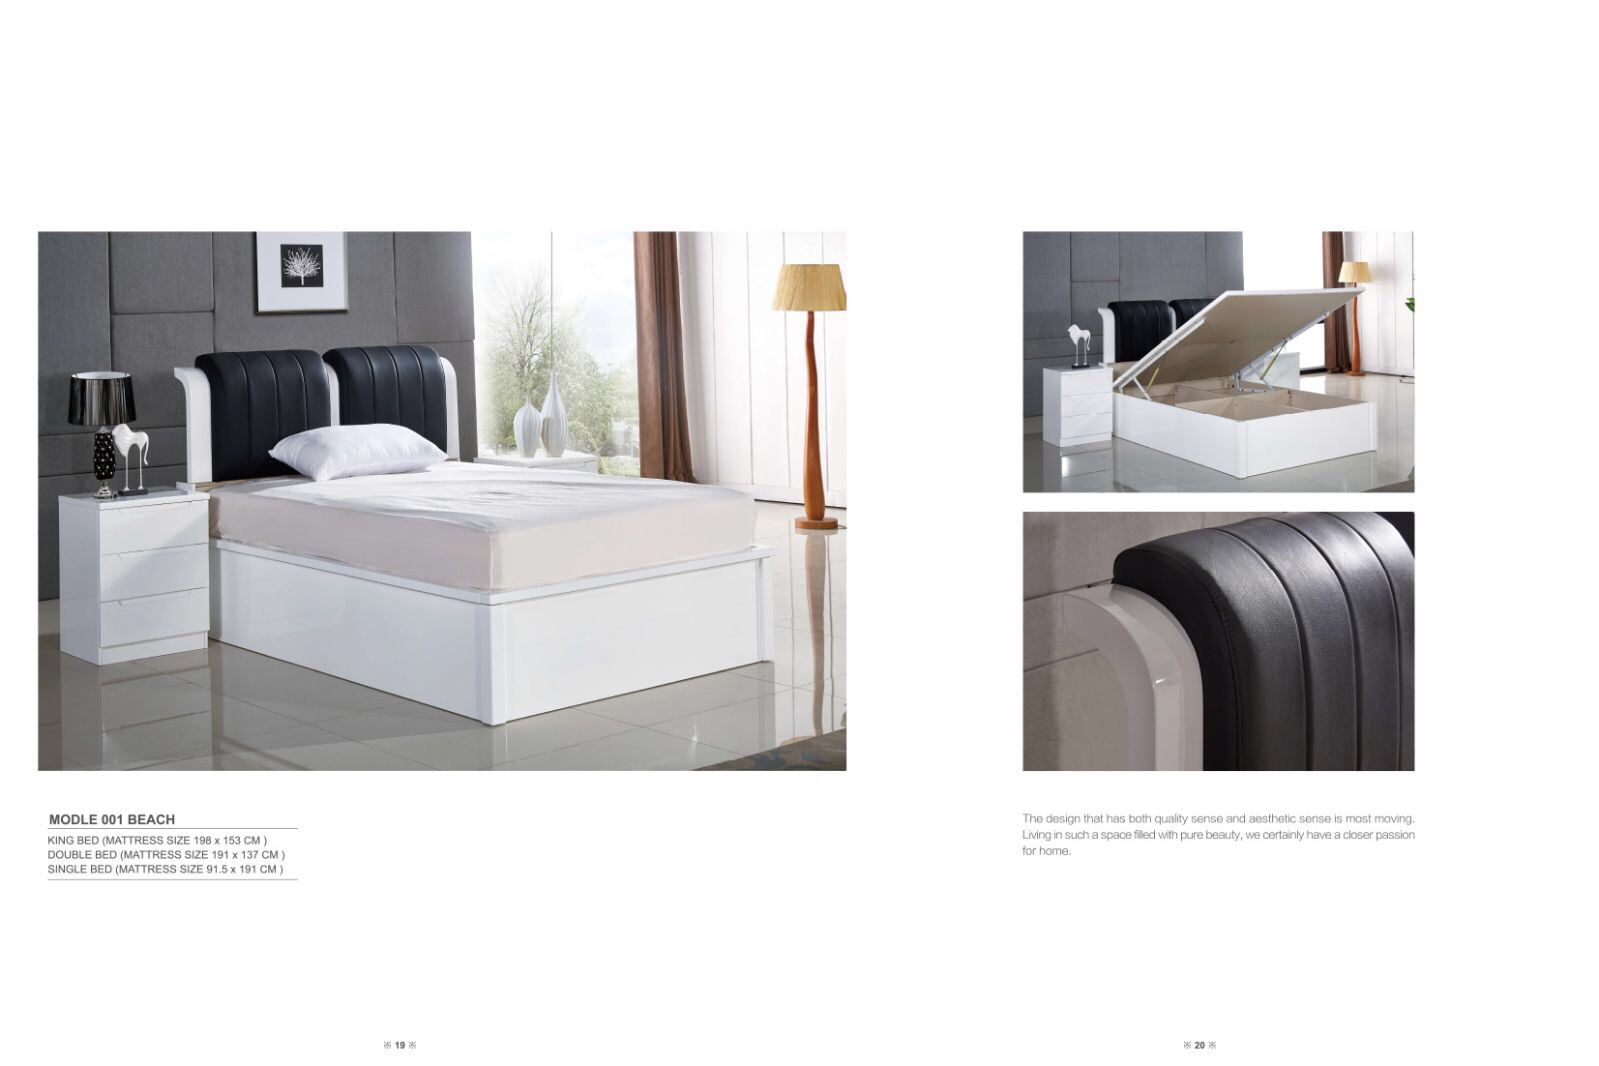 Rugby Storage Bed frame with black leather